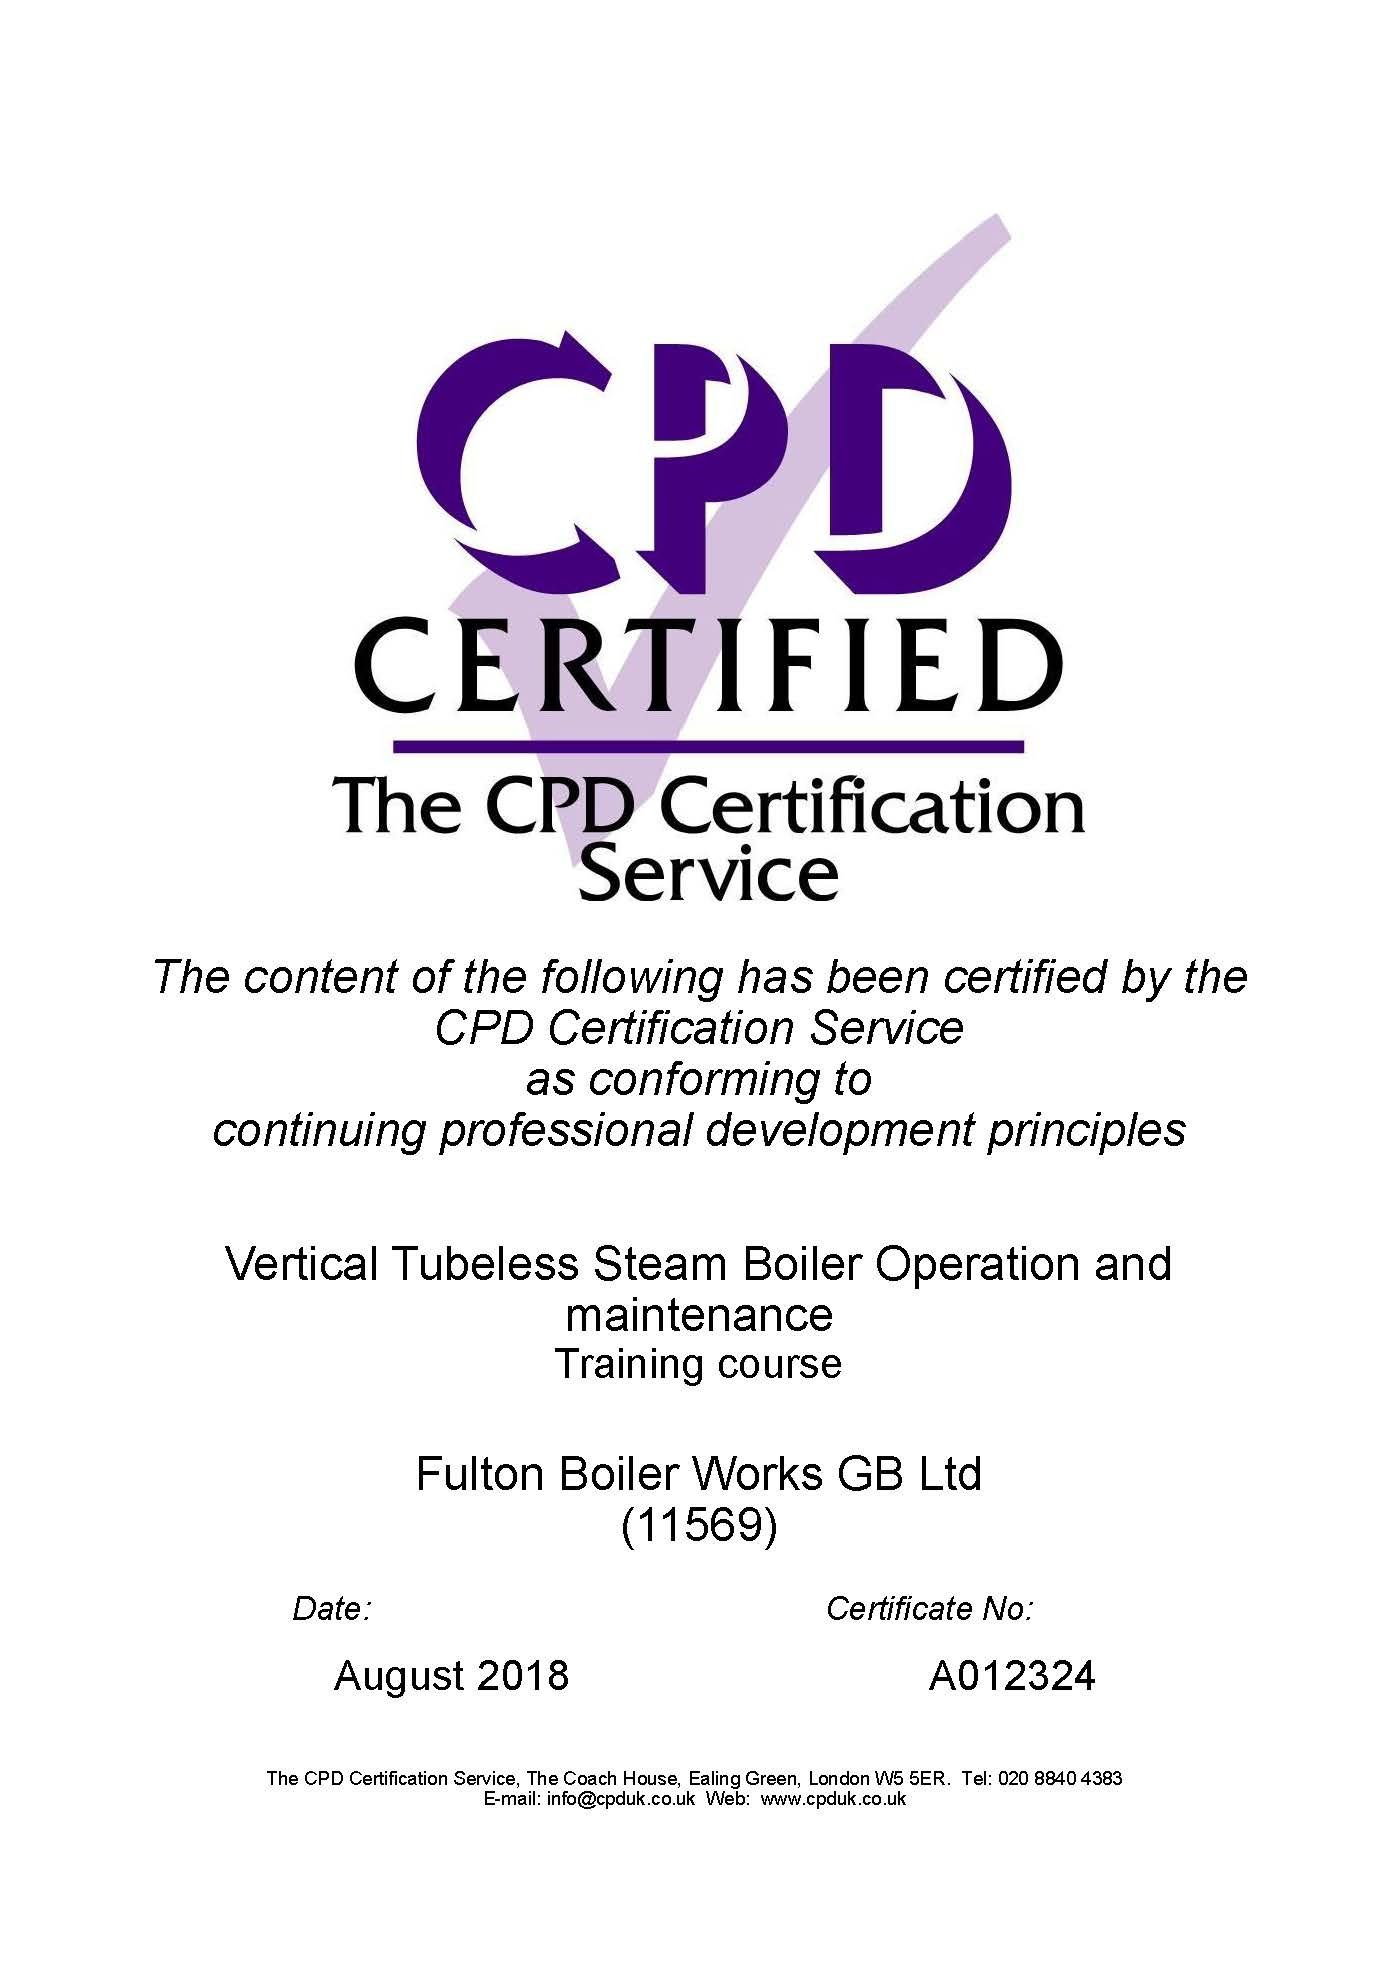 Fulton_CPD_Certification.jpg